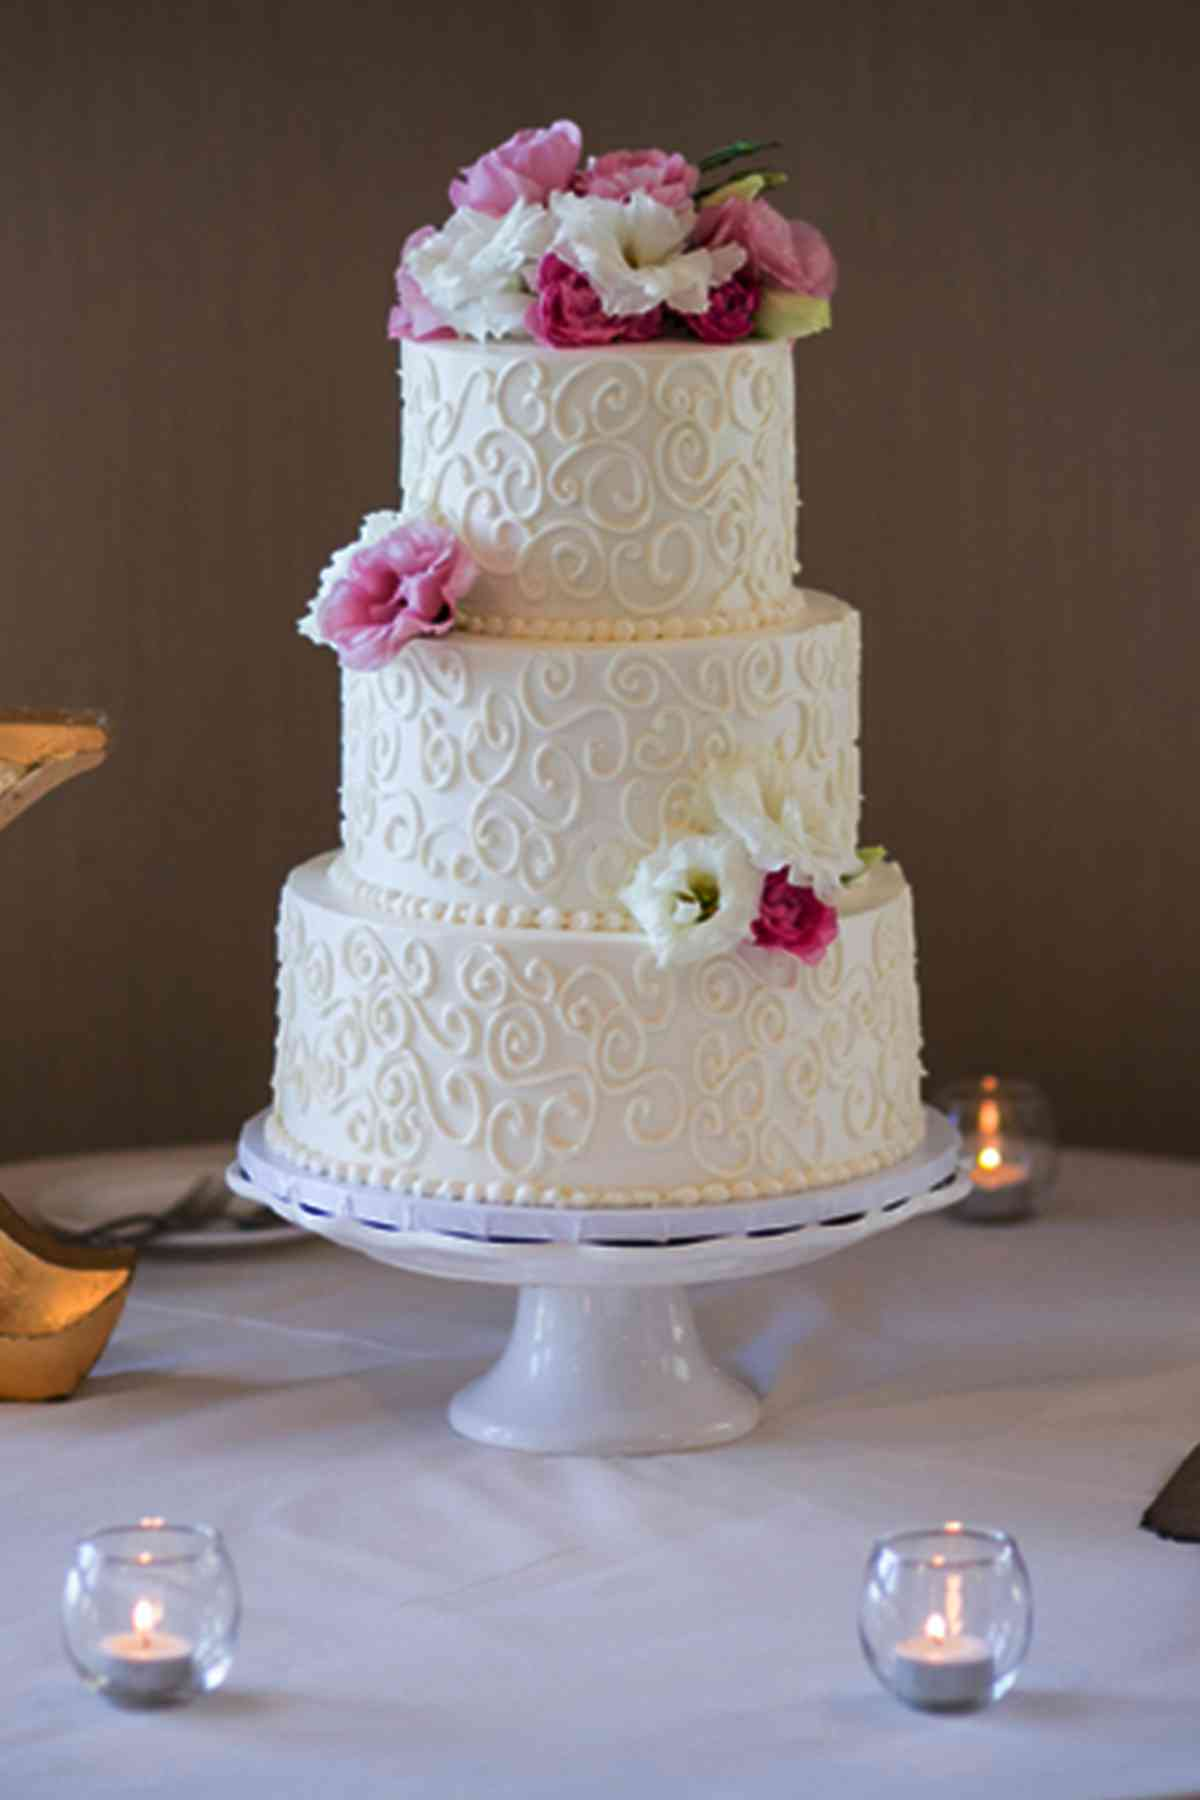 Sweet Swirls French Gourmet Wedding Cakes Pinterest Wedding Cakes 1 Tier Wedding Cake Pearls Wedding Cake wedding cake Simple Wedding Cakes